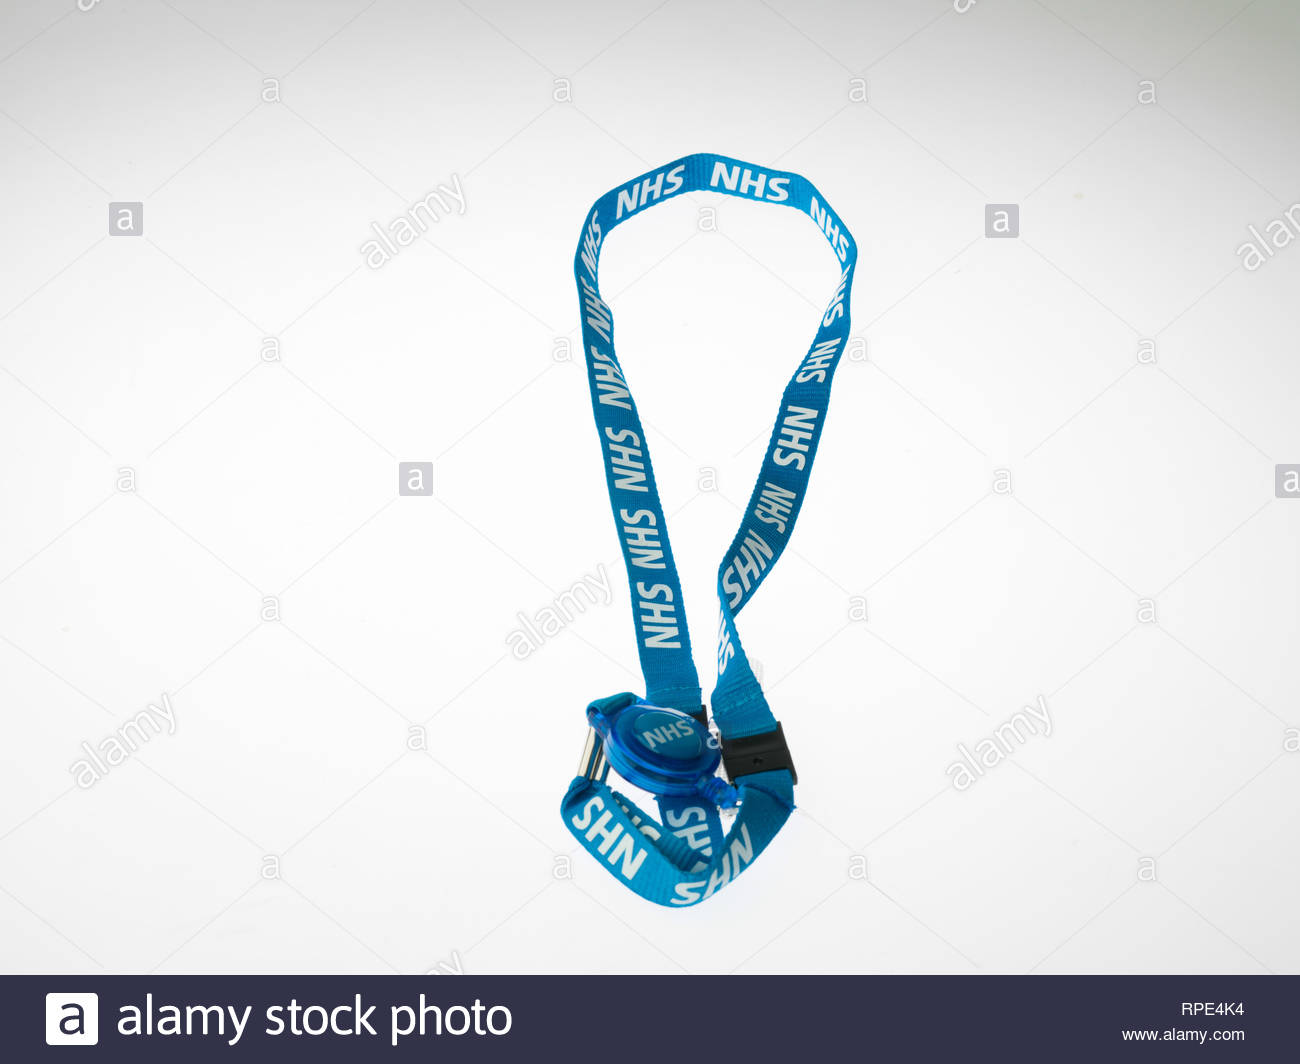 NHS staff employee badge Stock Photo